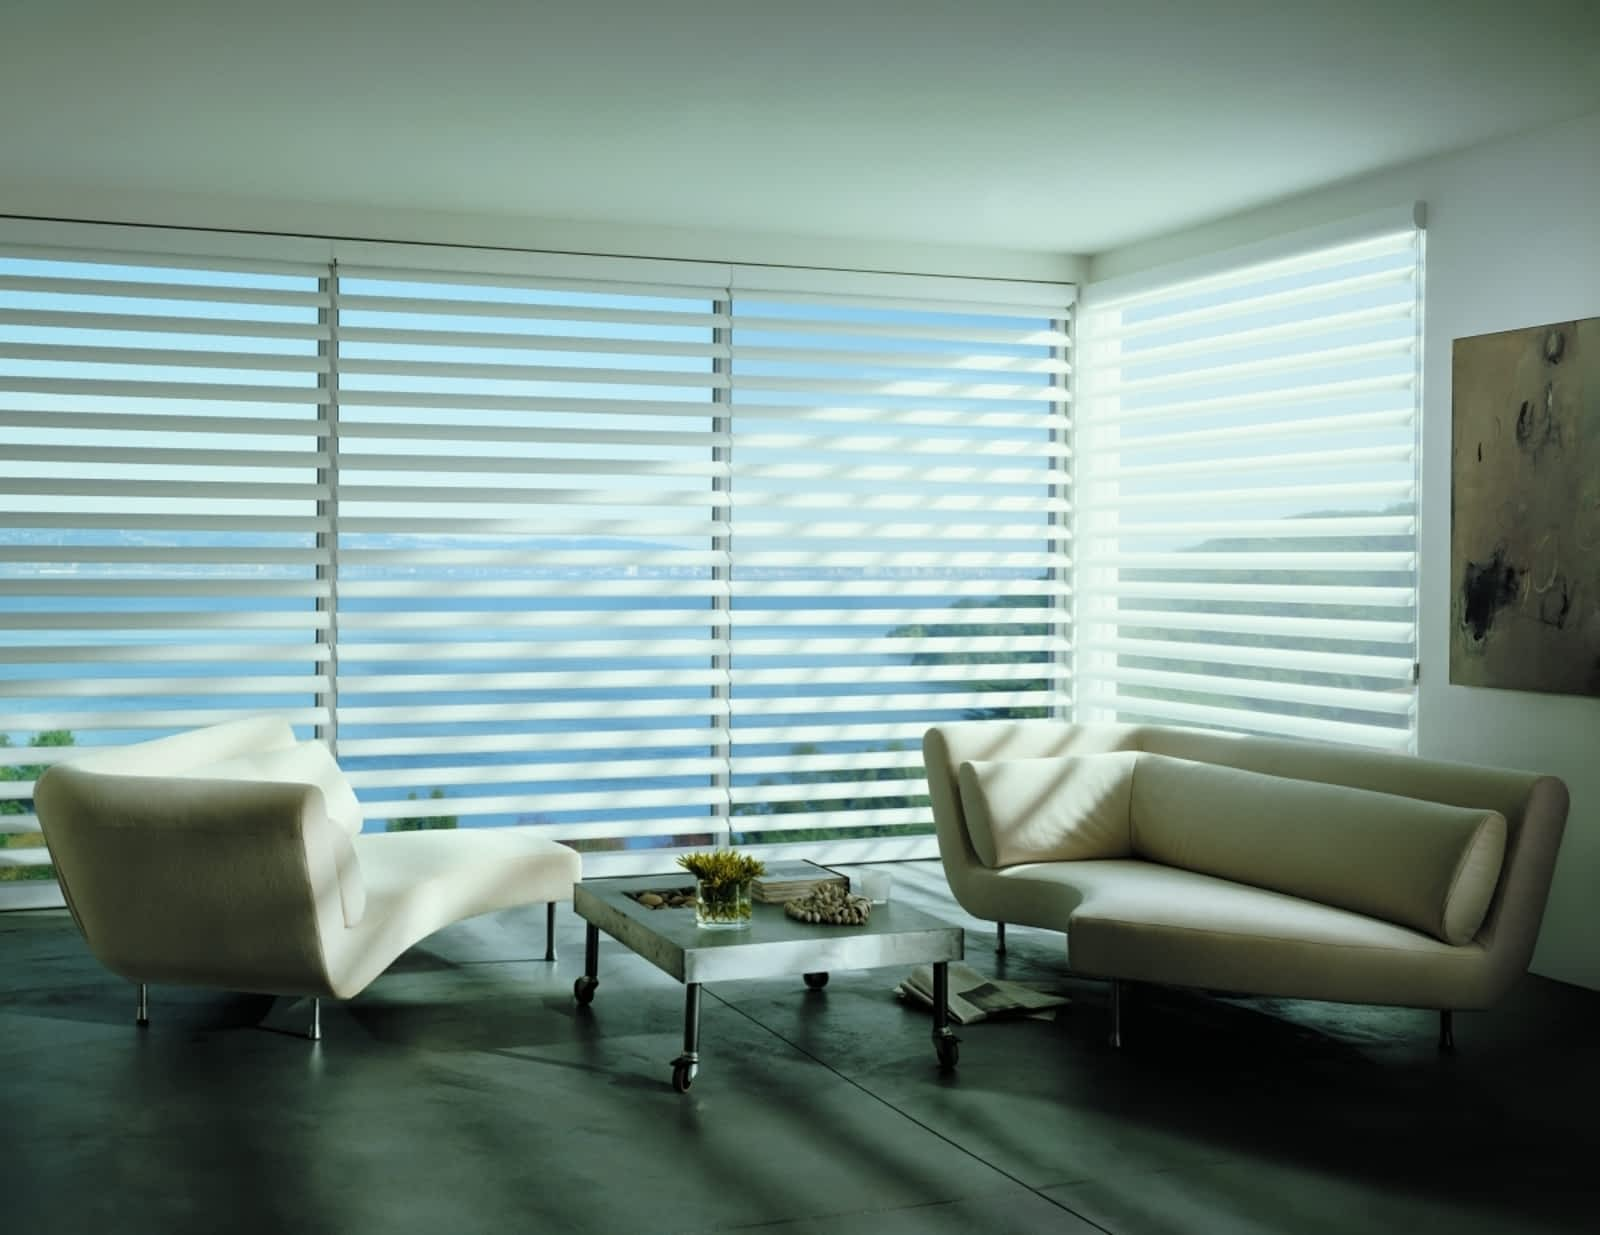 designs a s melinda draperies and design interior drapes lawrence services melindas blinds